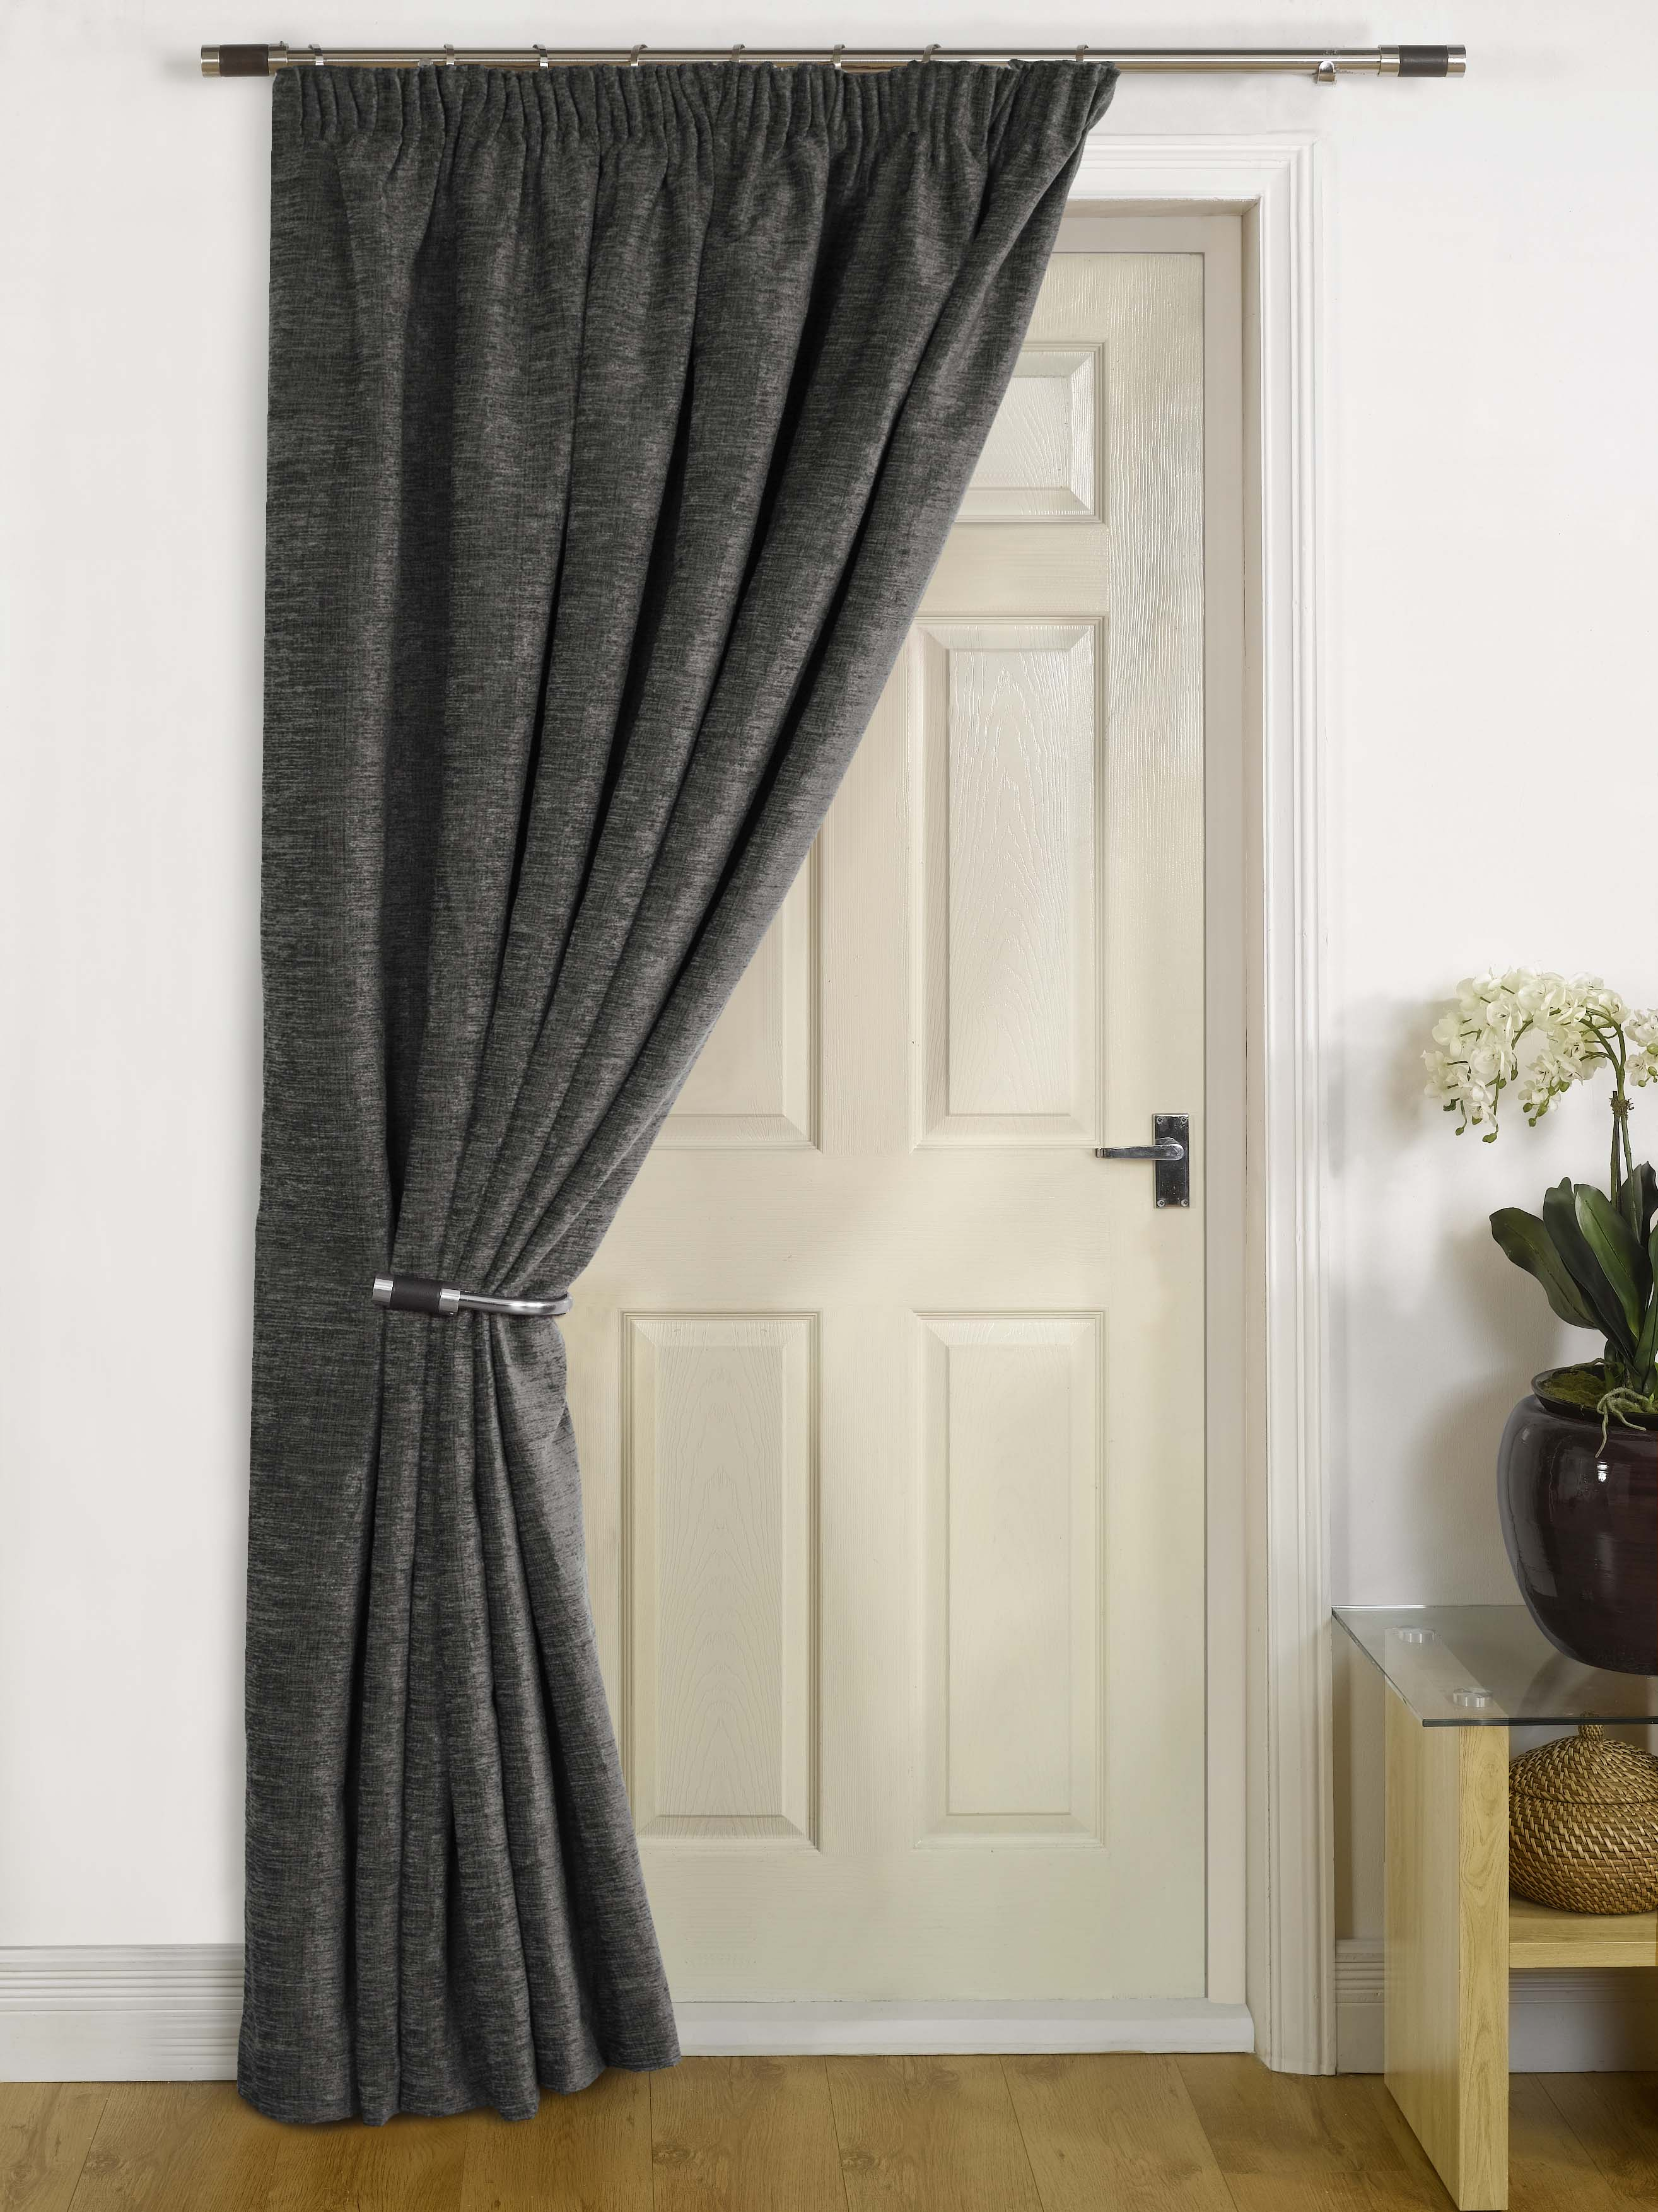 Change The Style And Look Of Your Room With Door Curtains ...